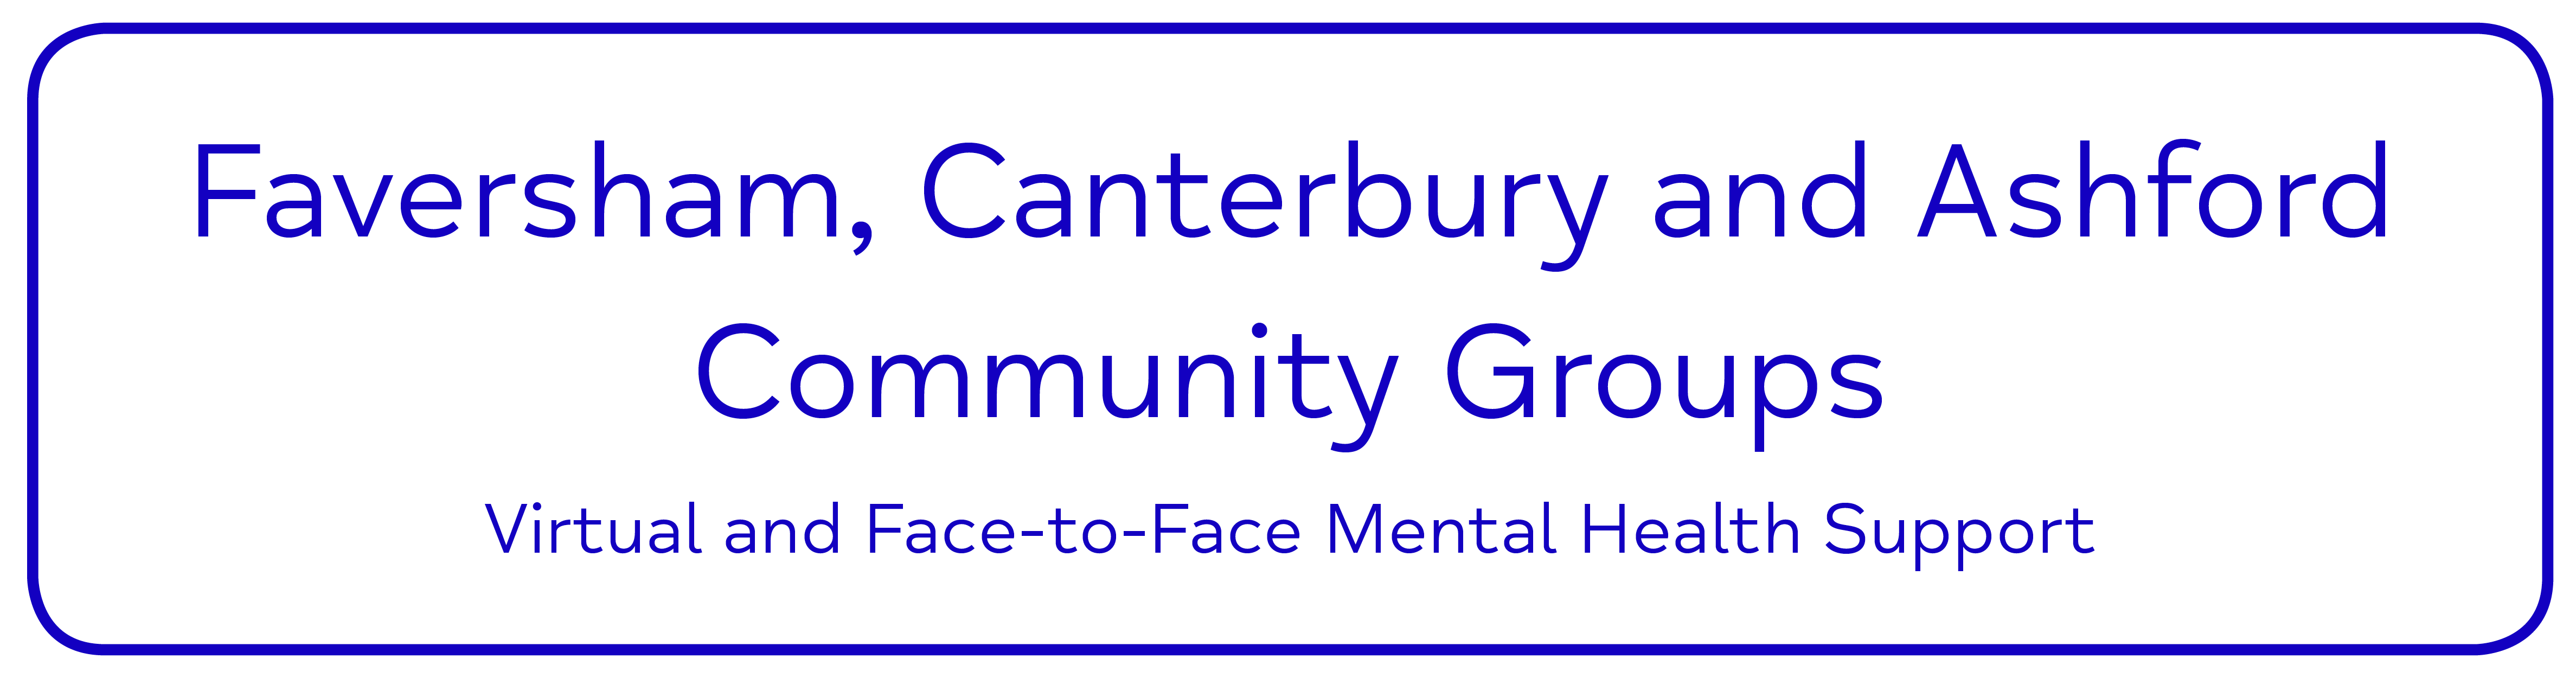 Faversham, Canterbury and Ashford Community Groups. Virtual and Face-to-Face Mental Health Support.